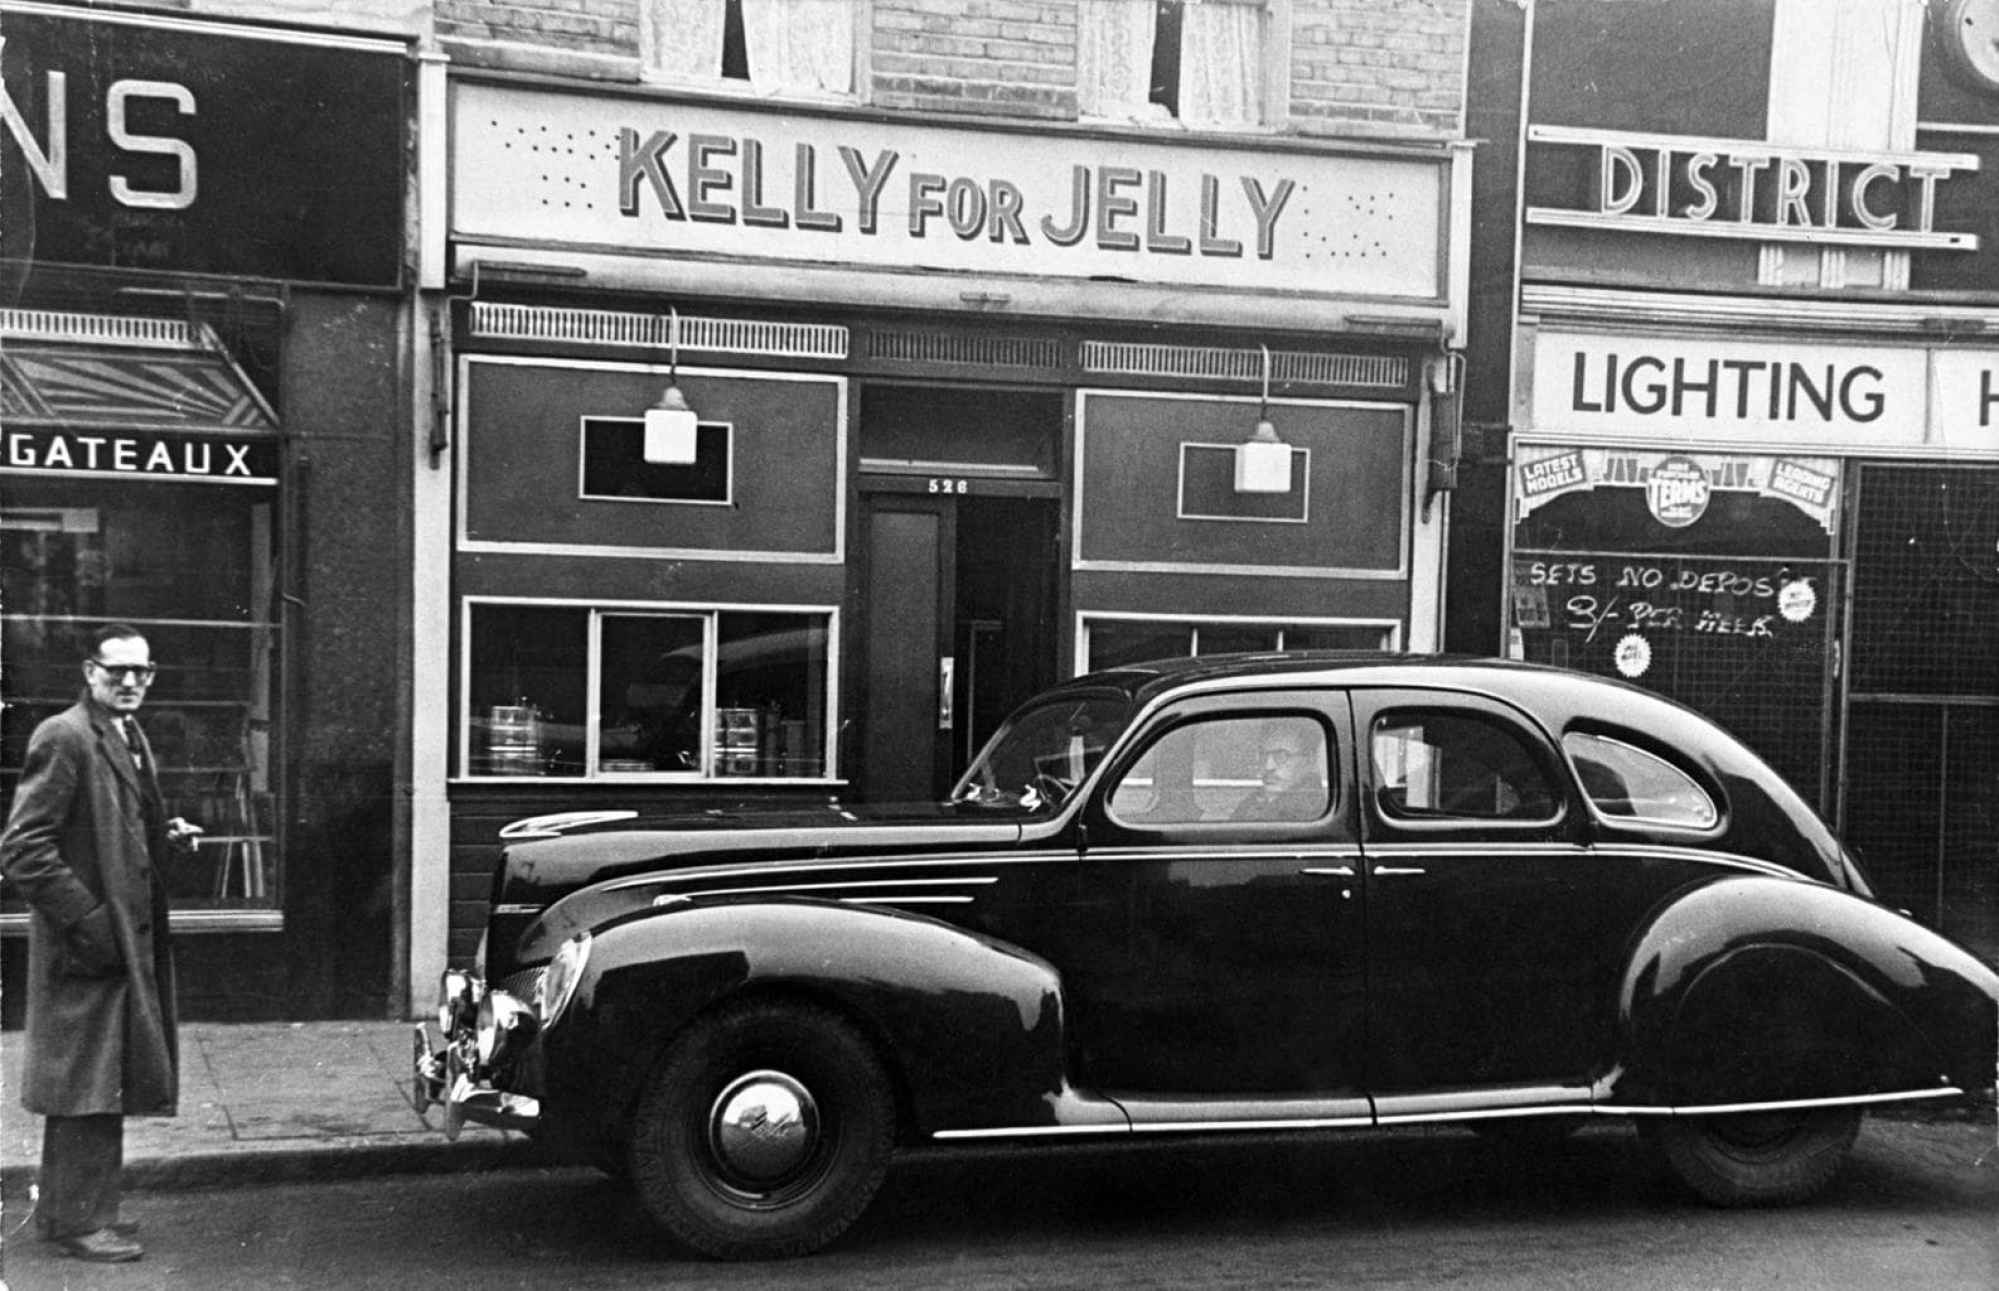 Photo courtesy of G. Kelly, Noted Eel & Pie Shop